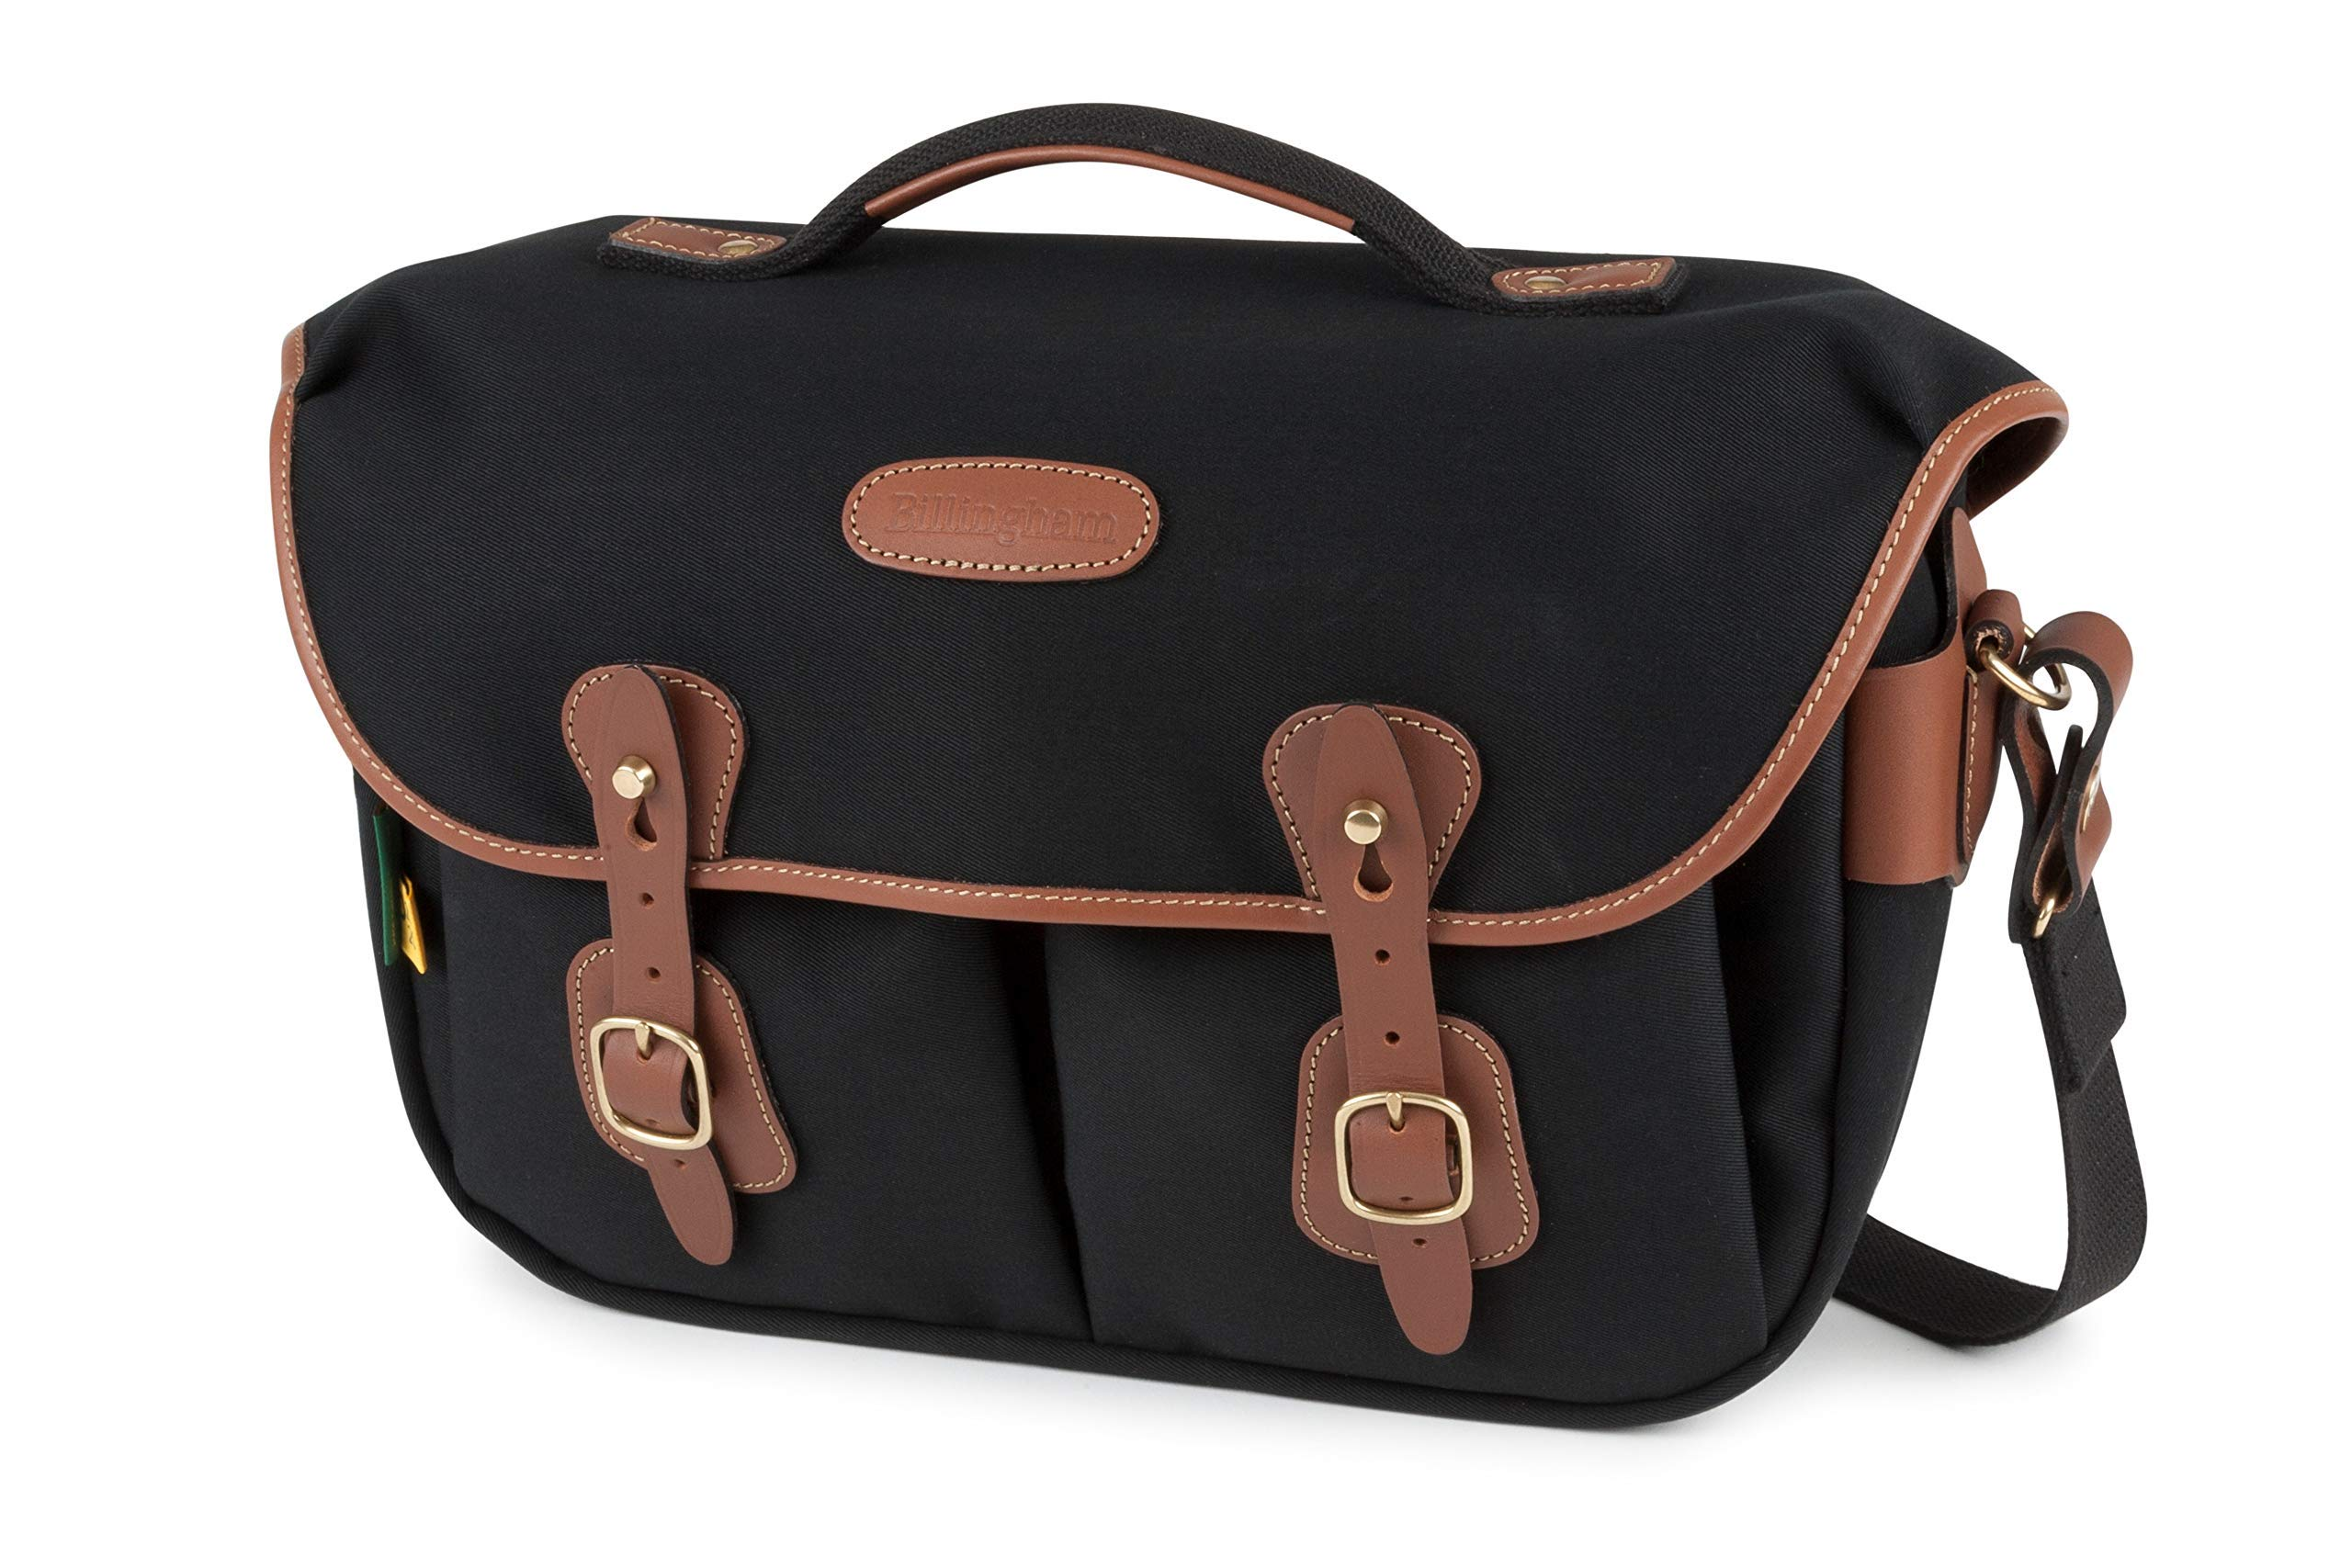 Black Canvas // Tan Leather Billingham 445 Camera Bag